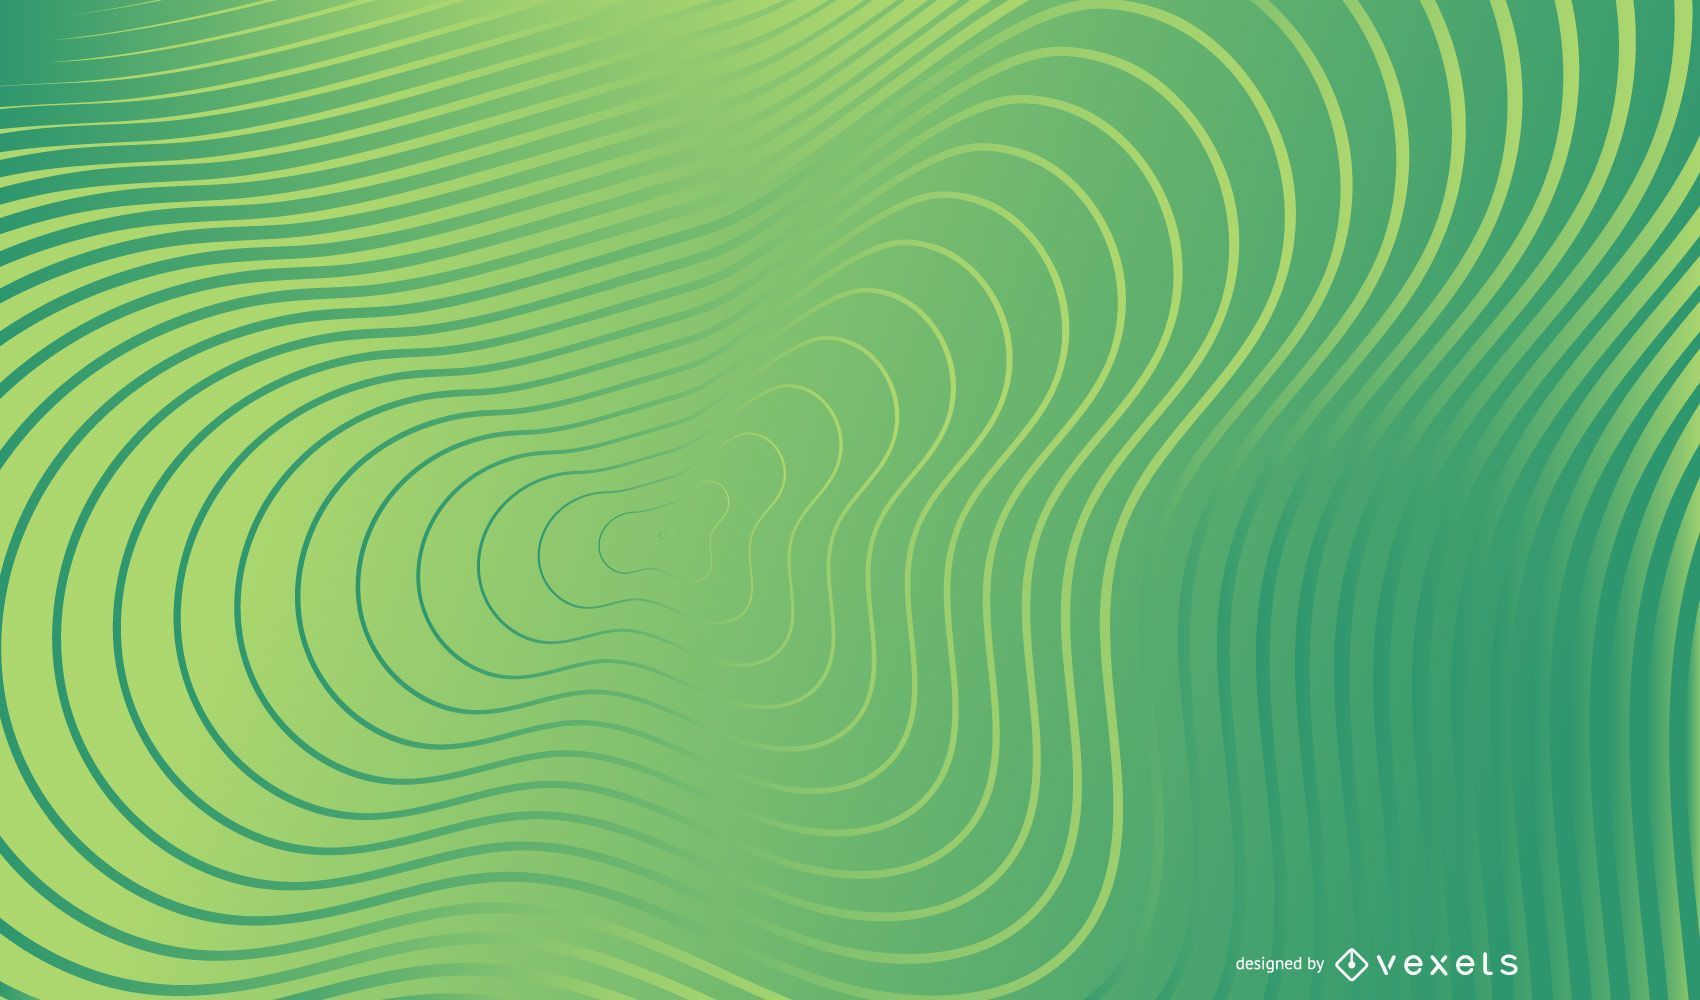 Green wavy lines abstract background